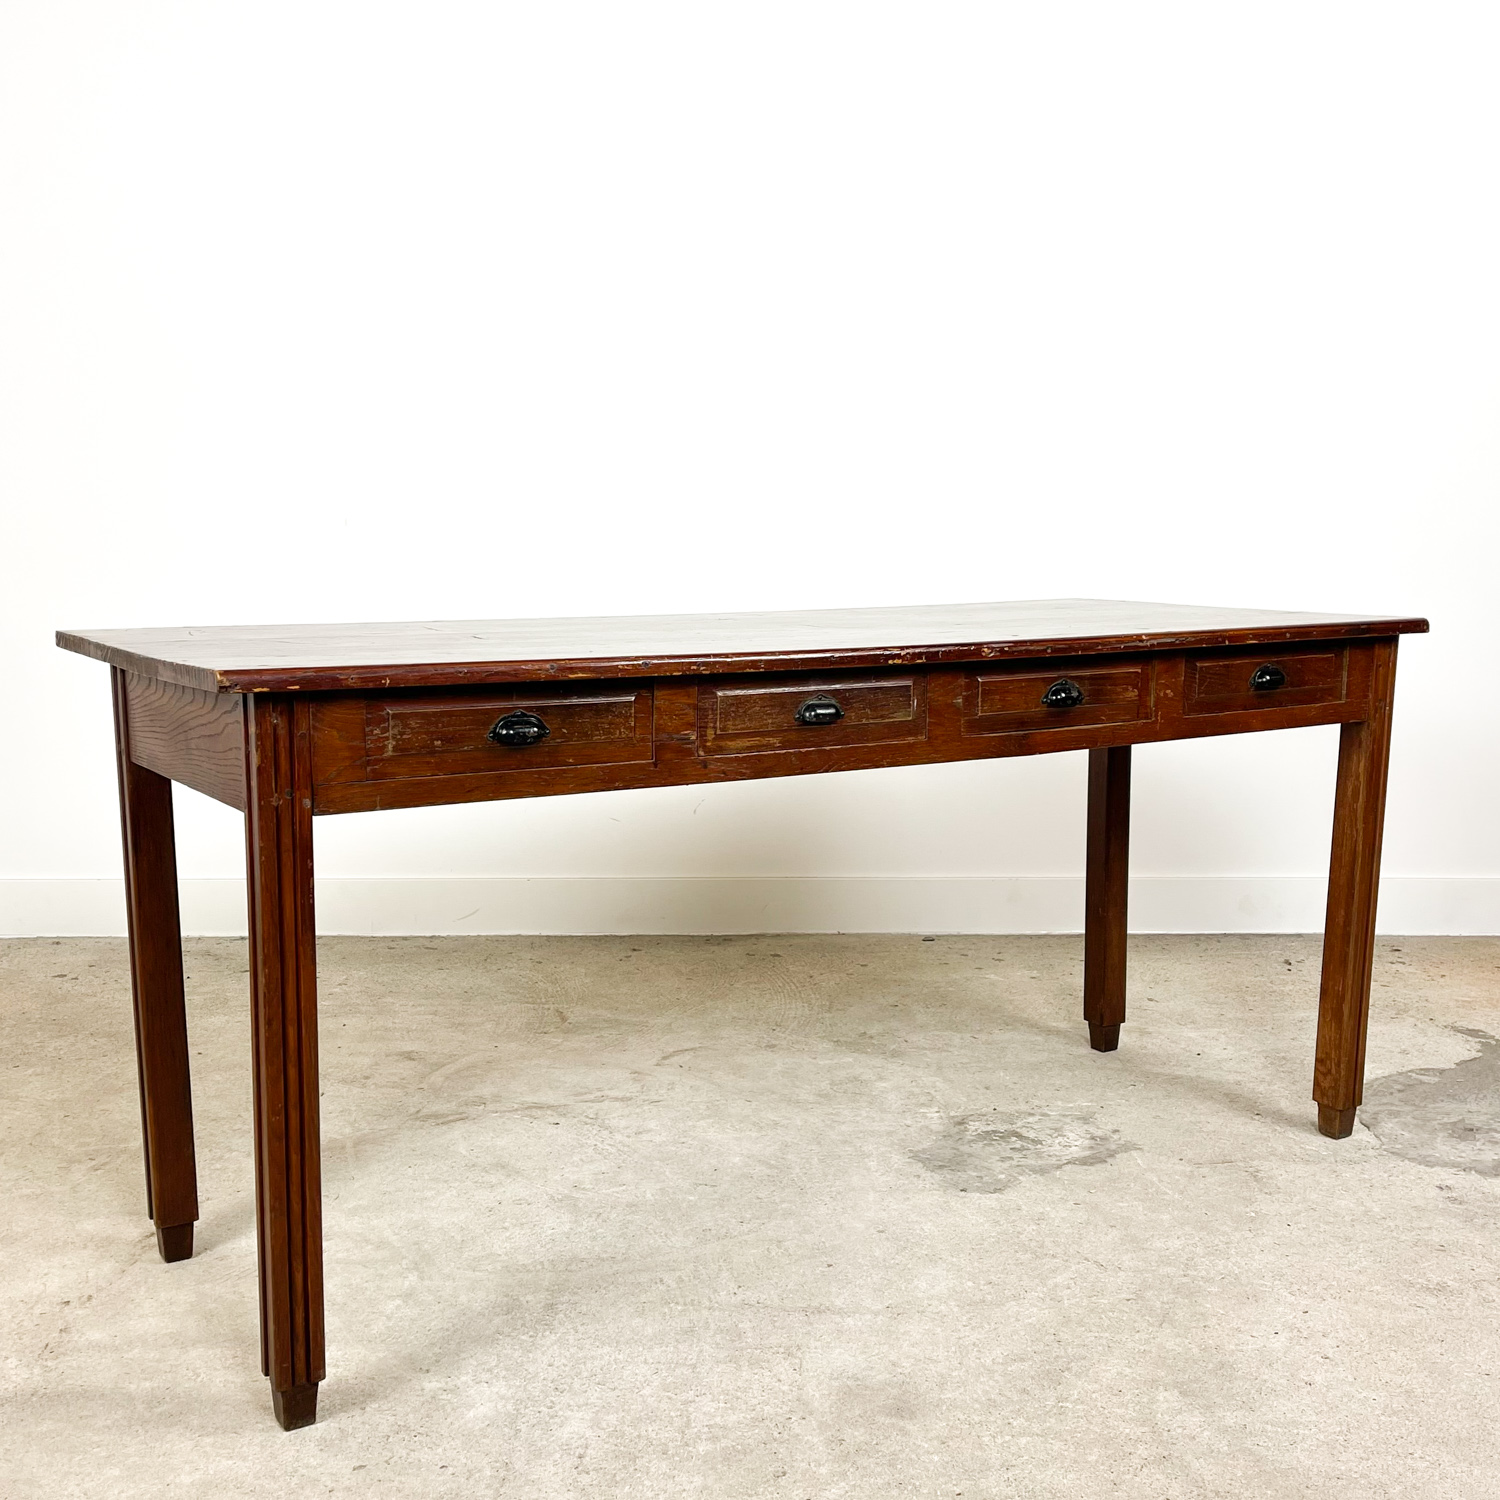 French antique console table with drawers